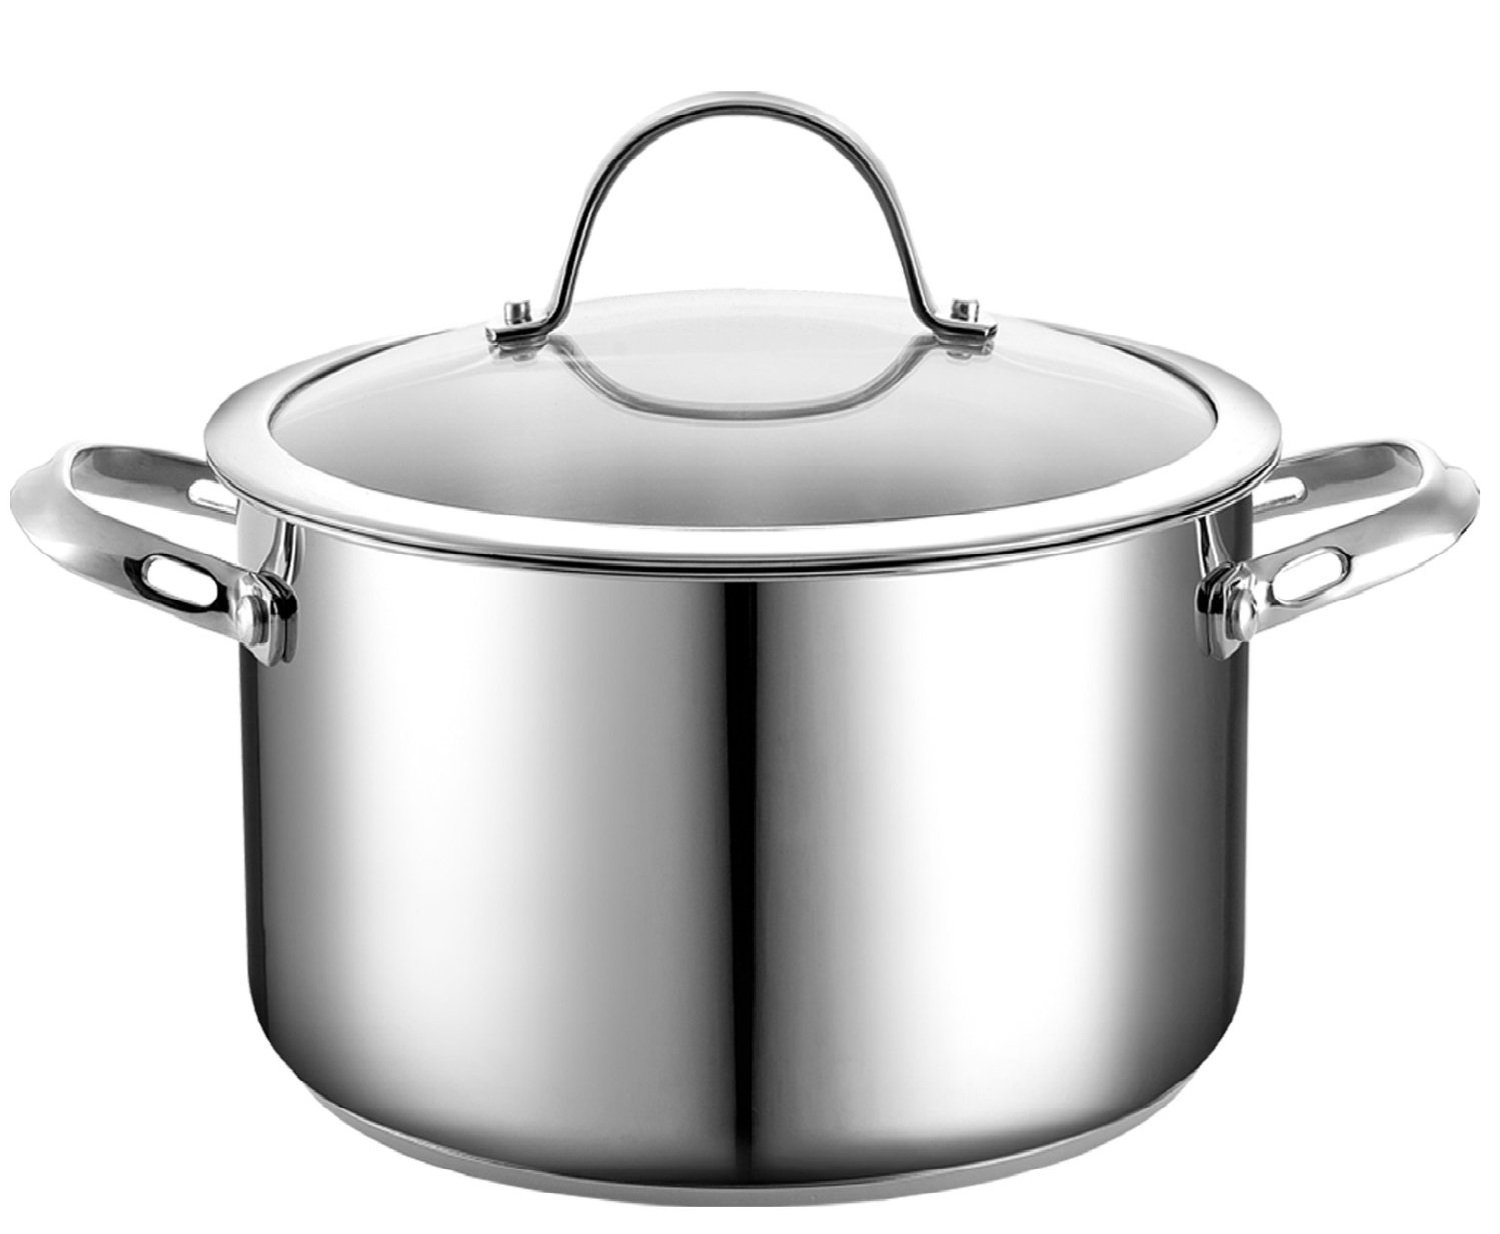 Cooks Standard 6-Quart Stainless Steel Stockpot with Lid